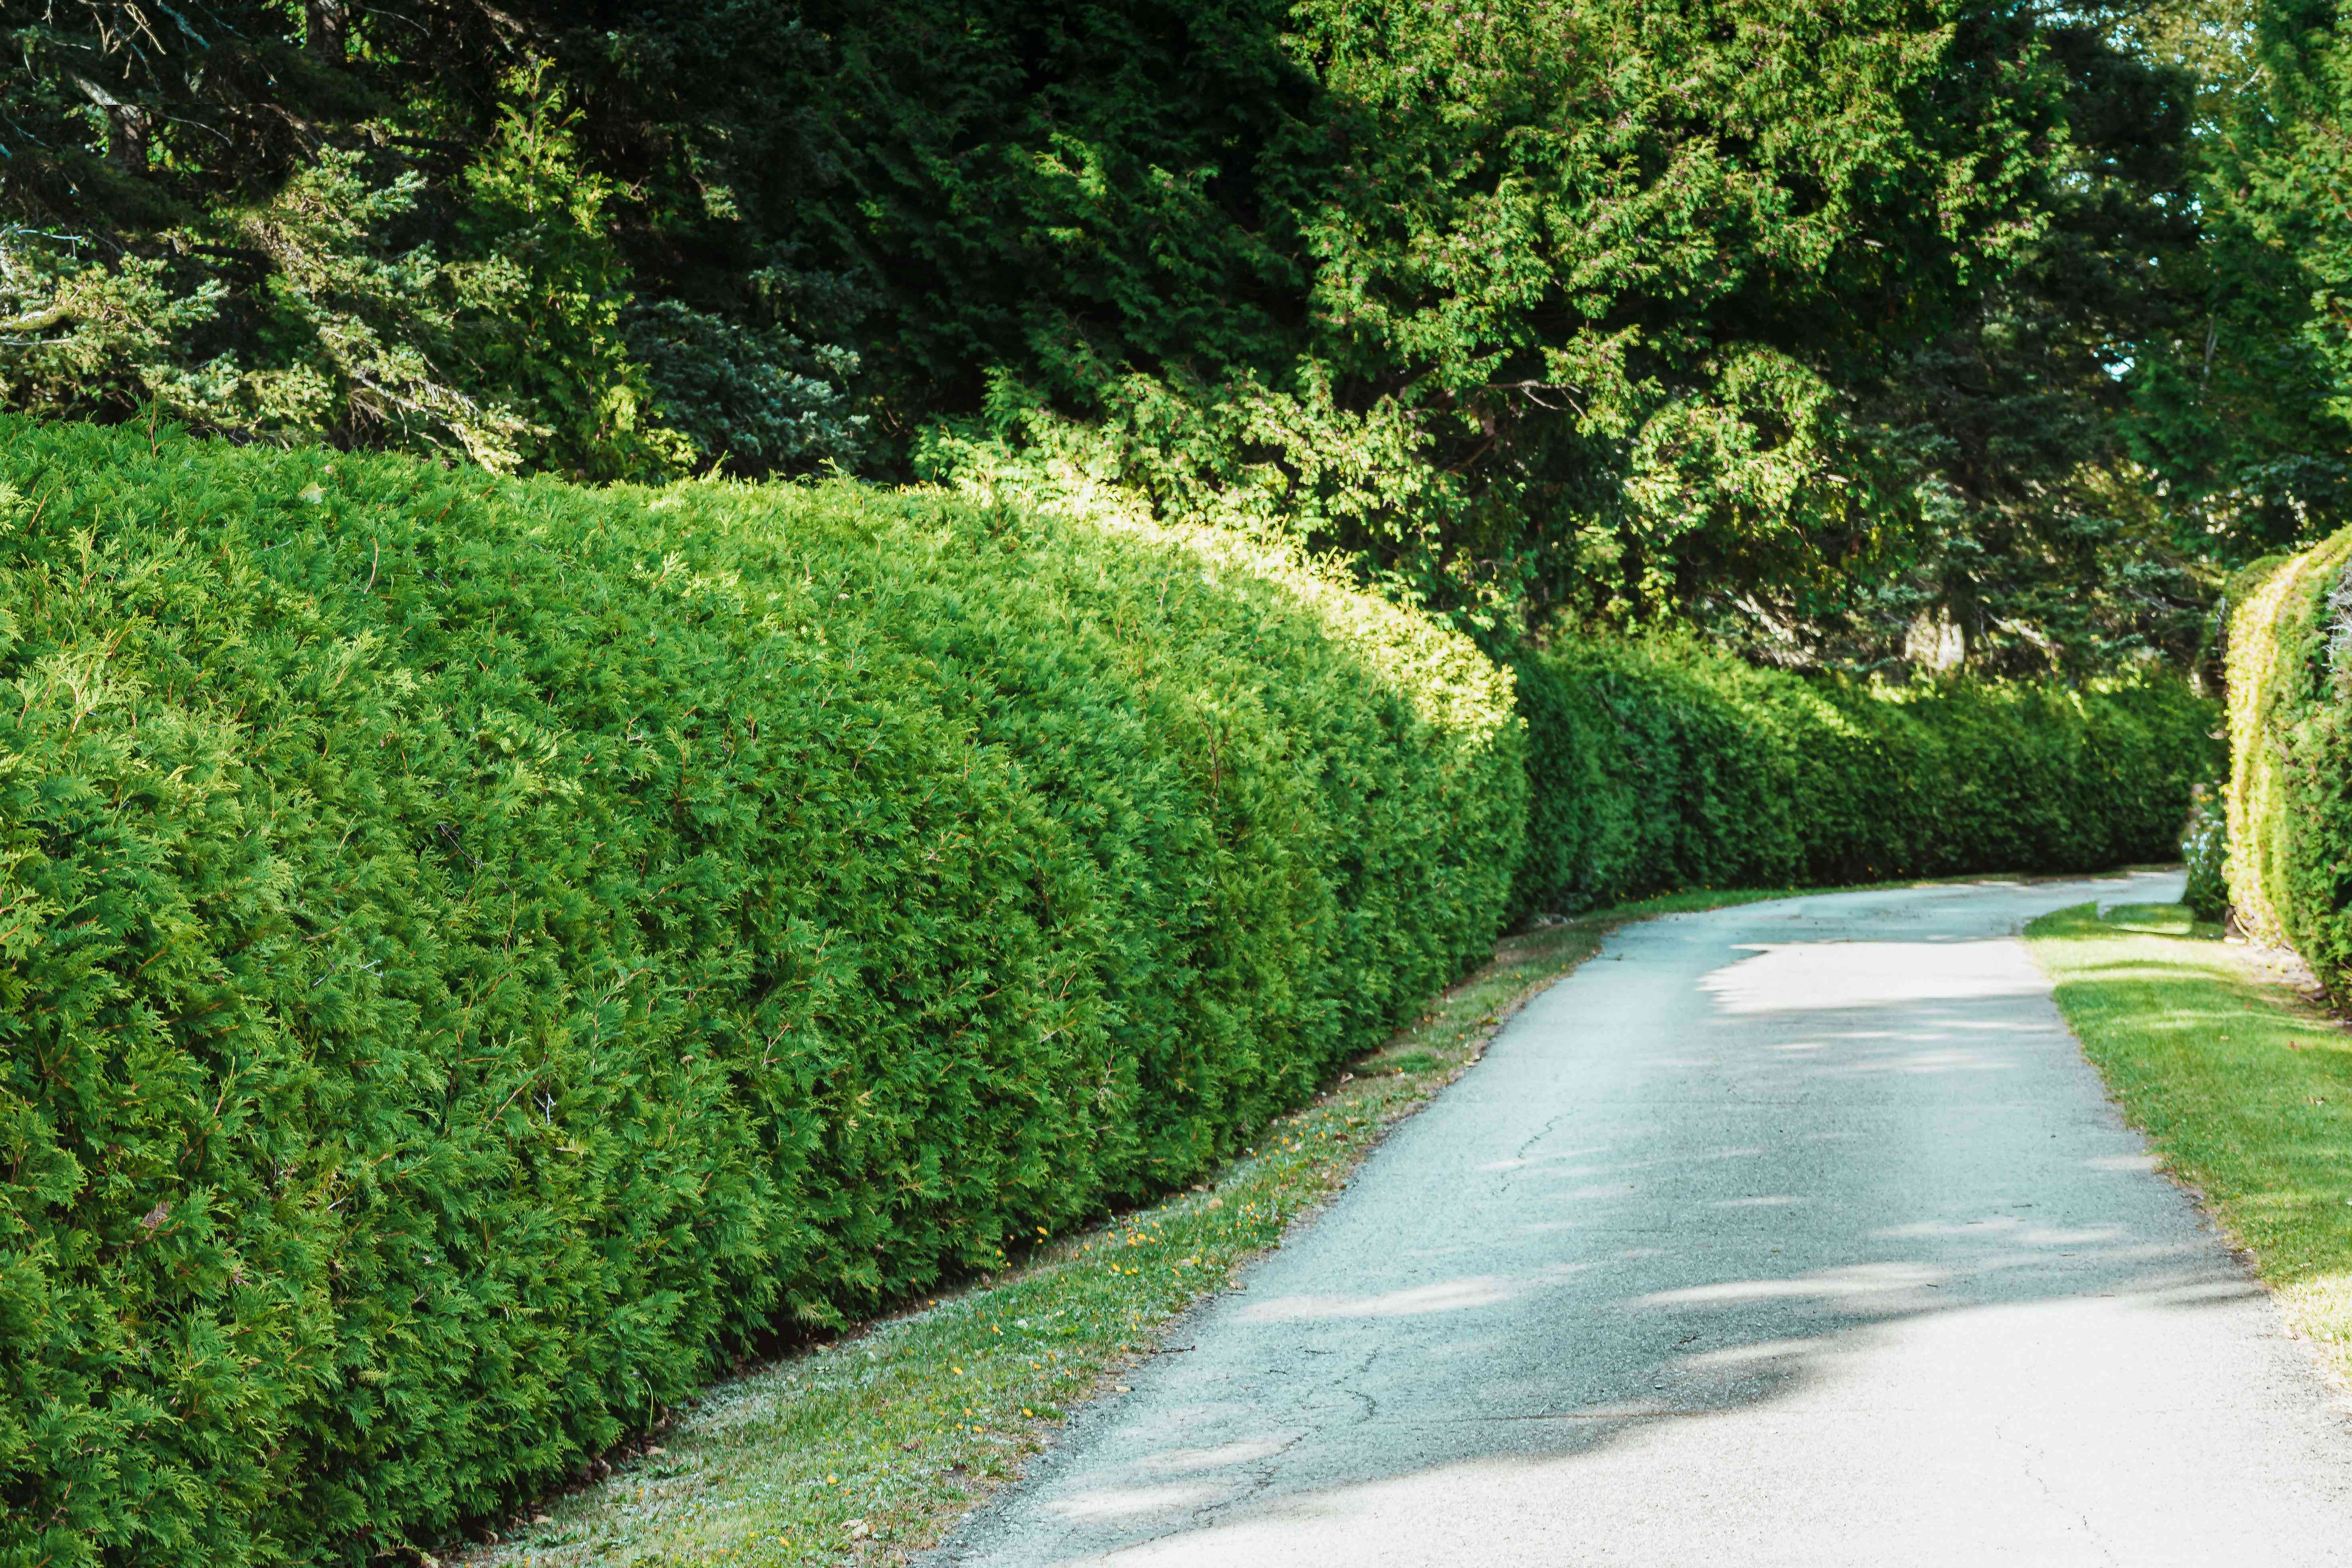 Trimmed hedges next to cement driveway